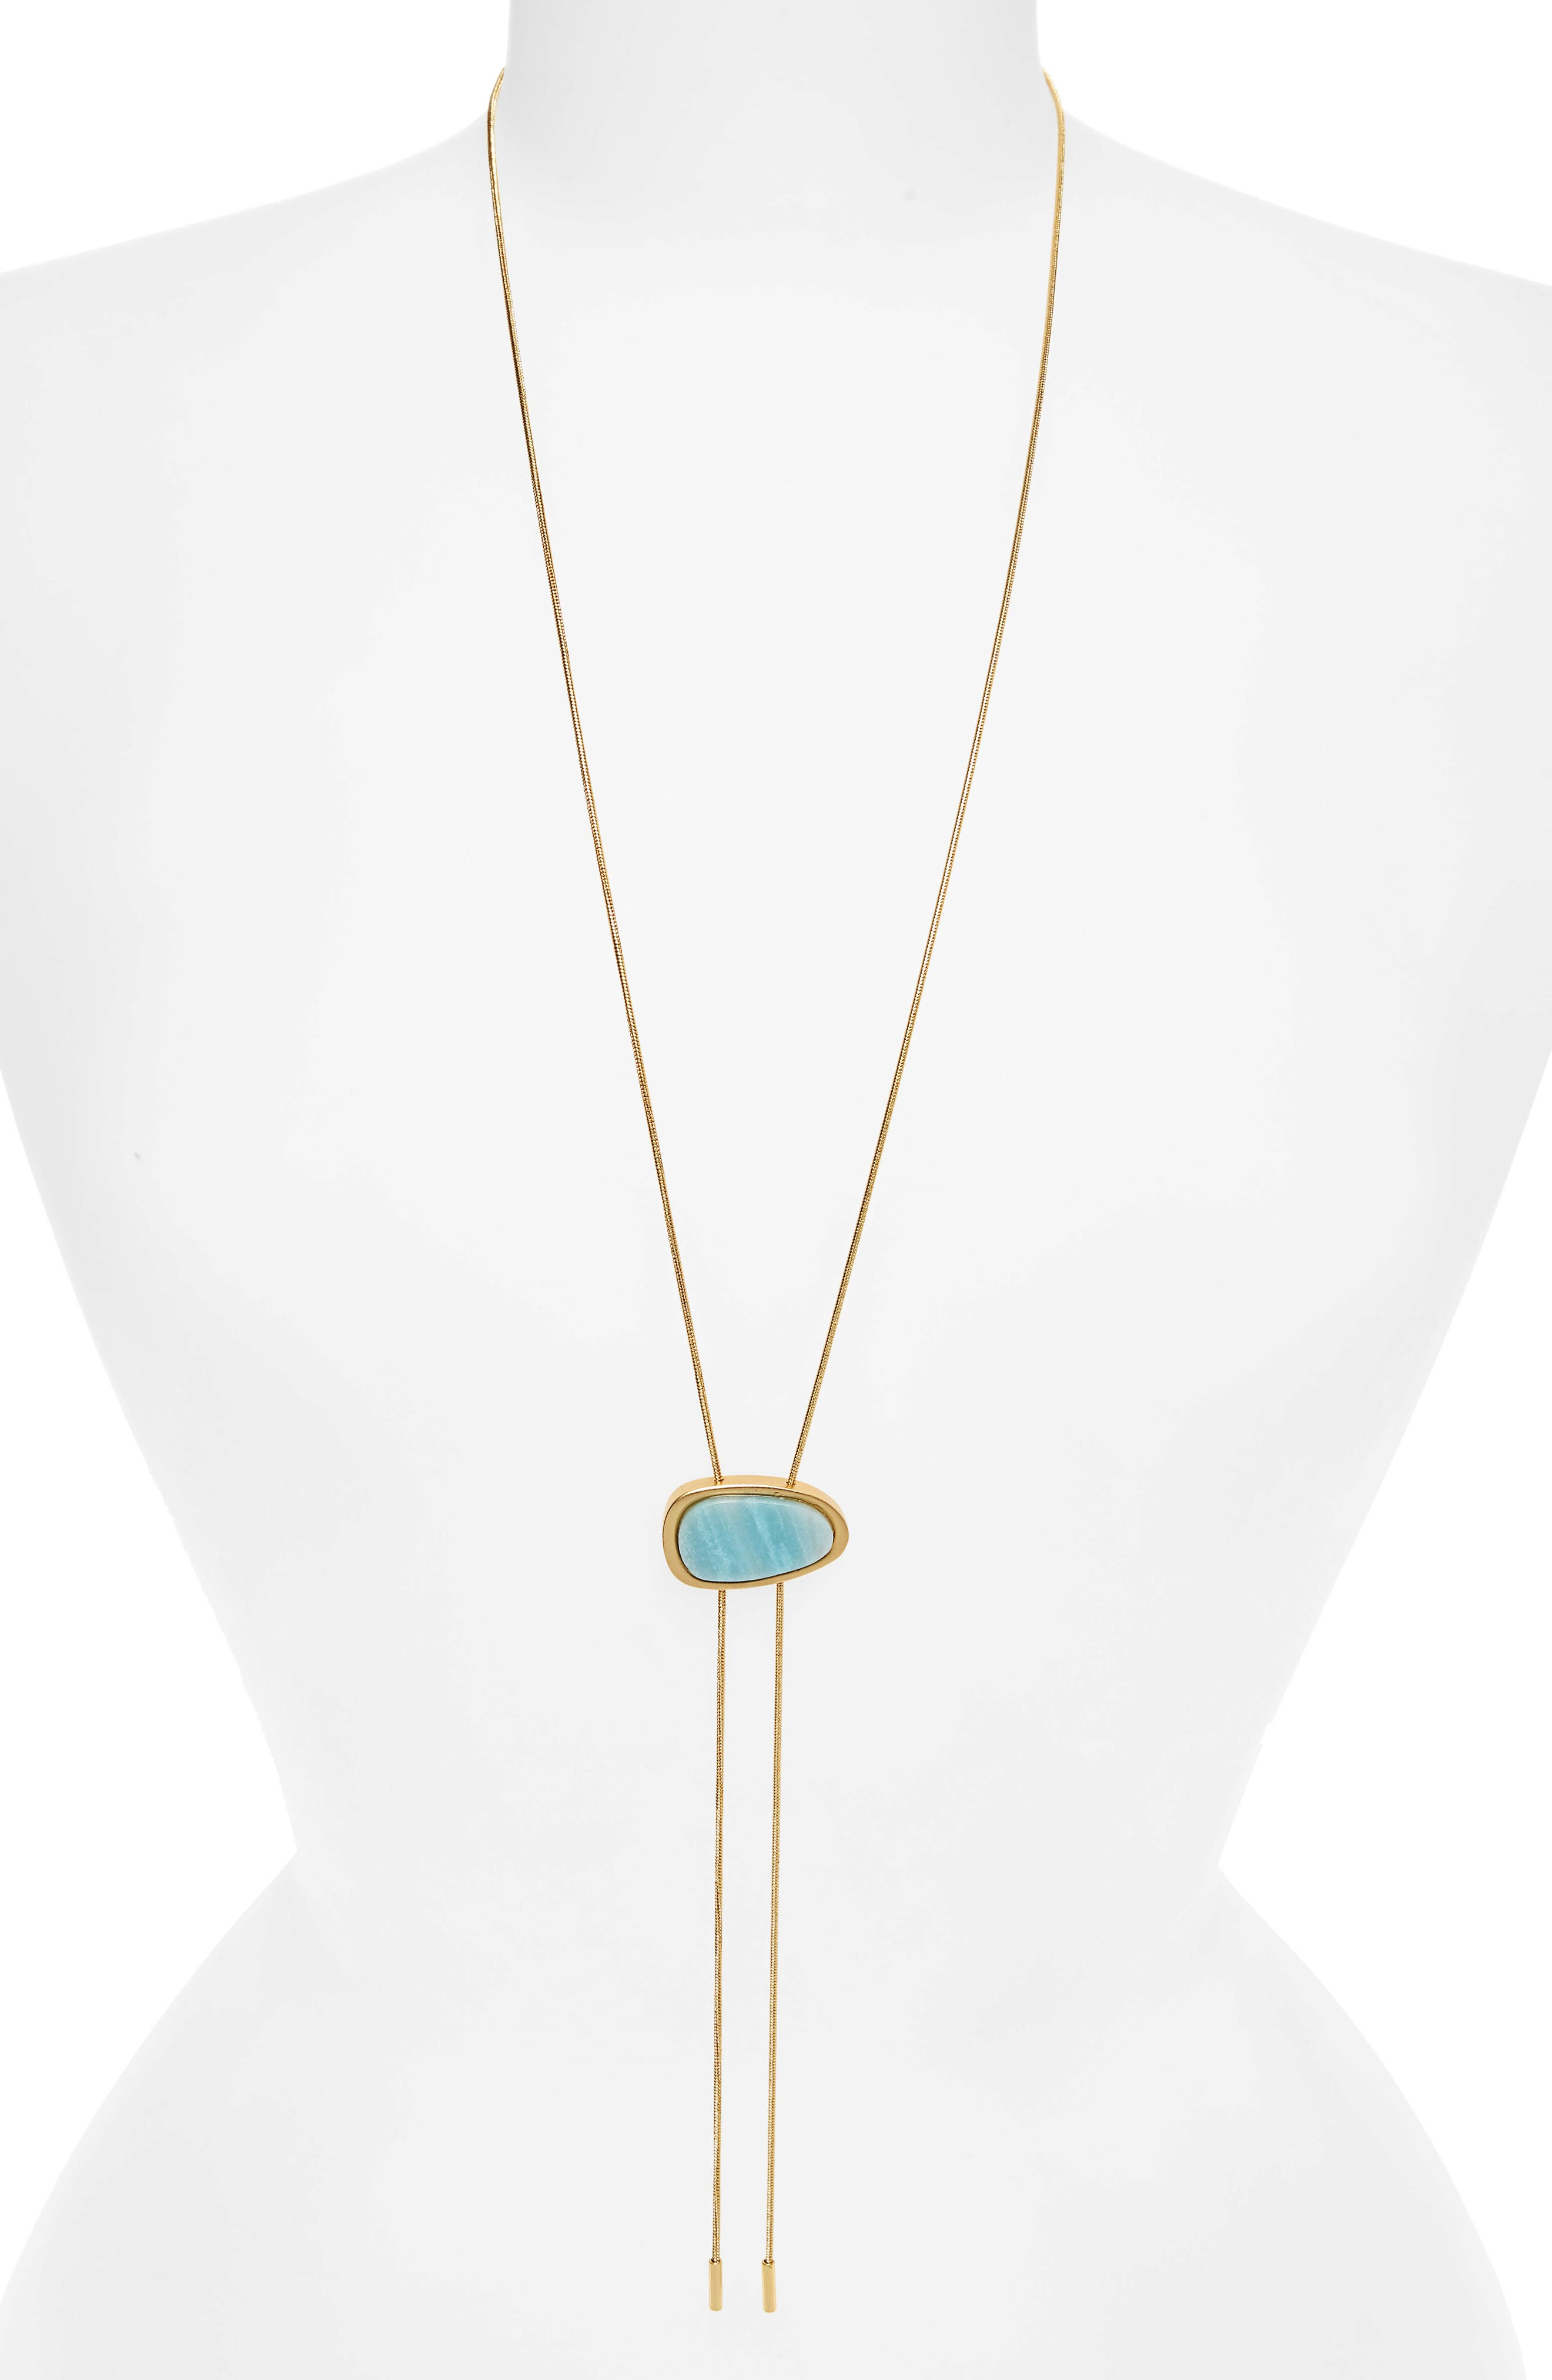 Madewell Bolo Necklace